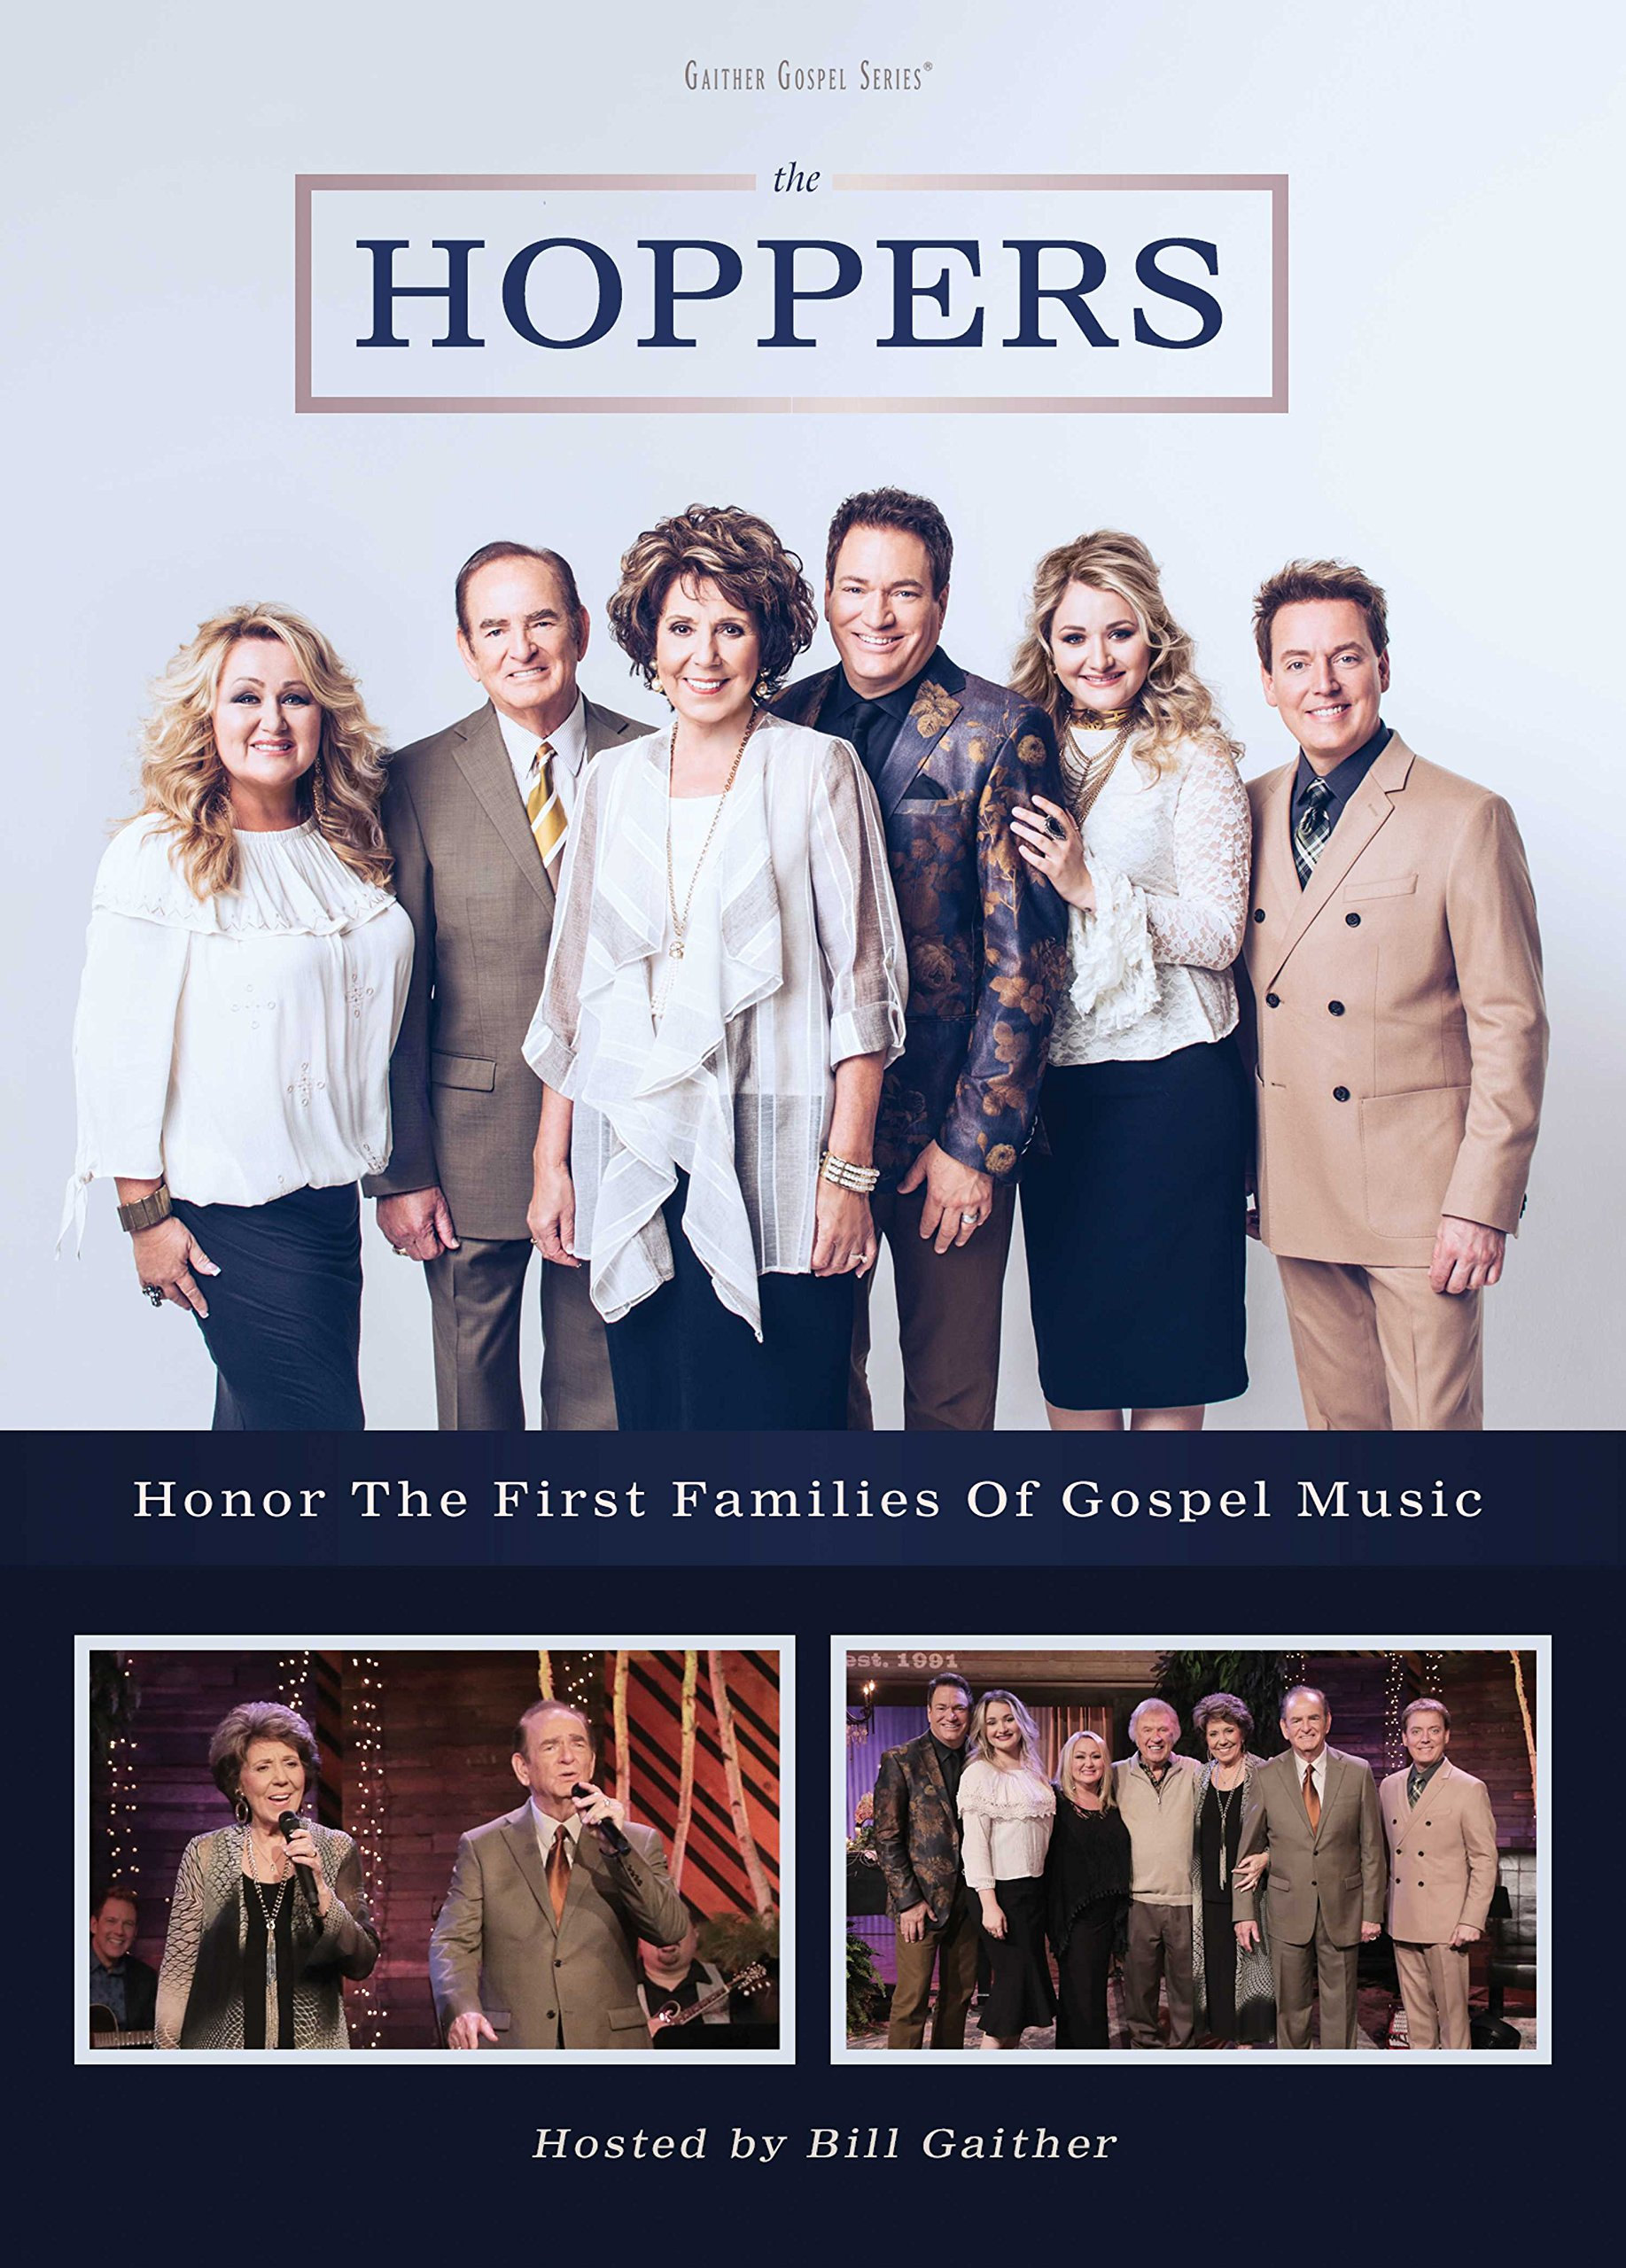 DVD : The Hoppers - The Hoppers Honor The First Families Of Gospel Music (DVD)